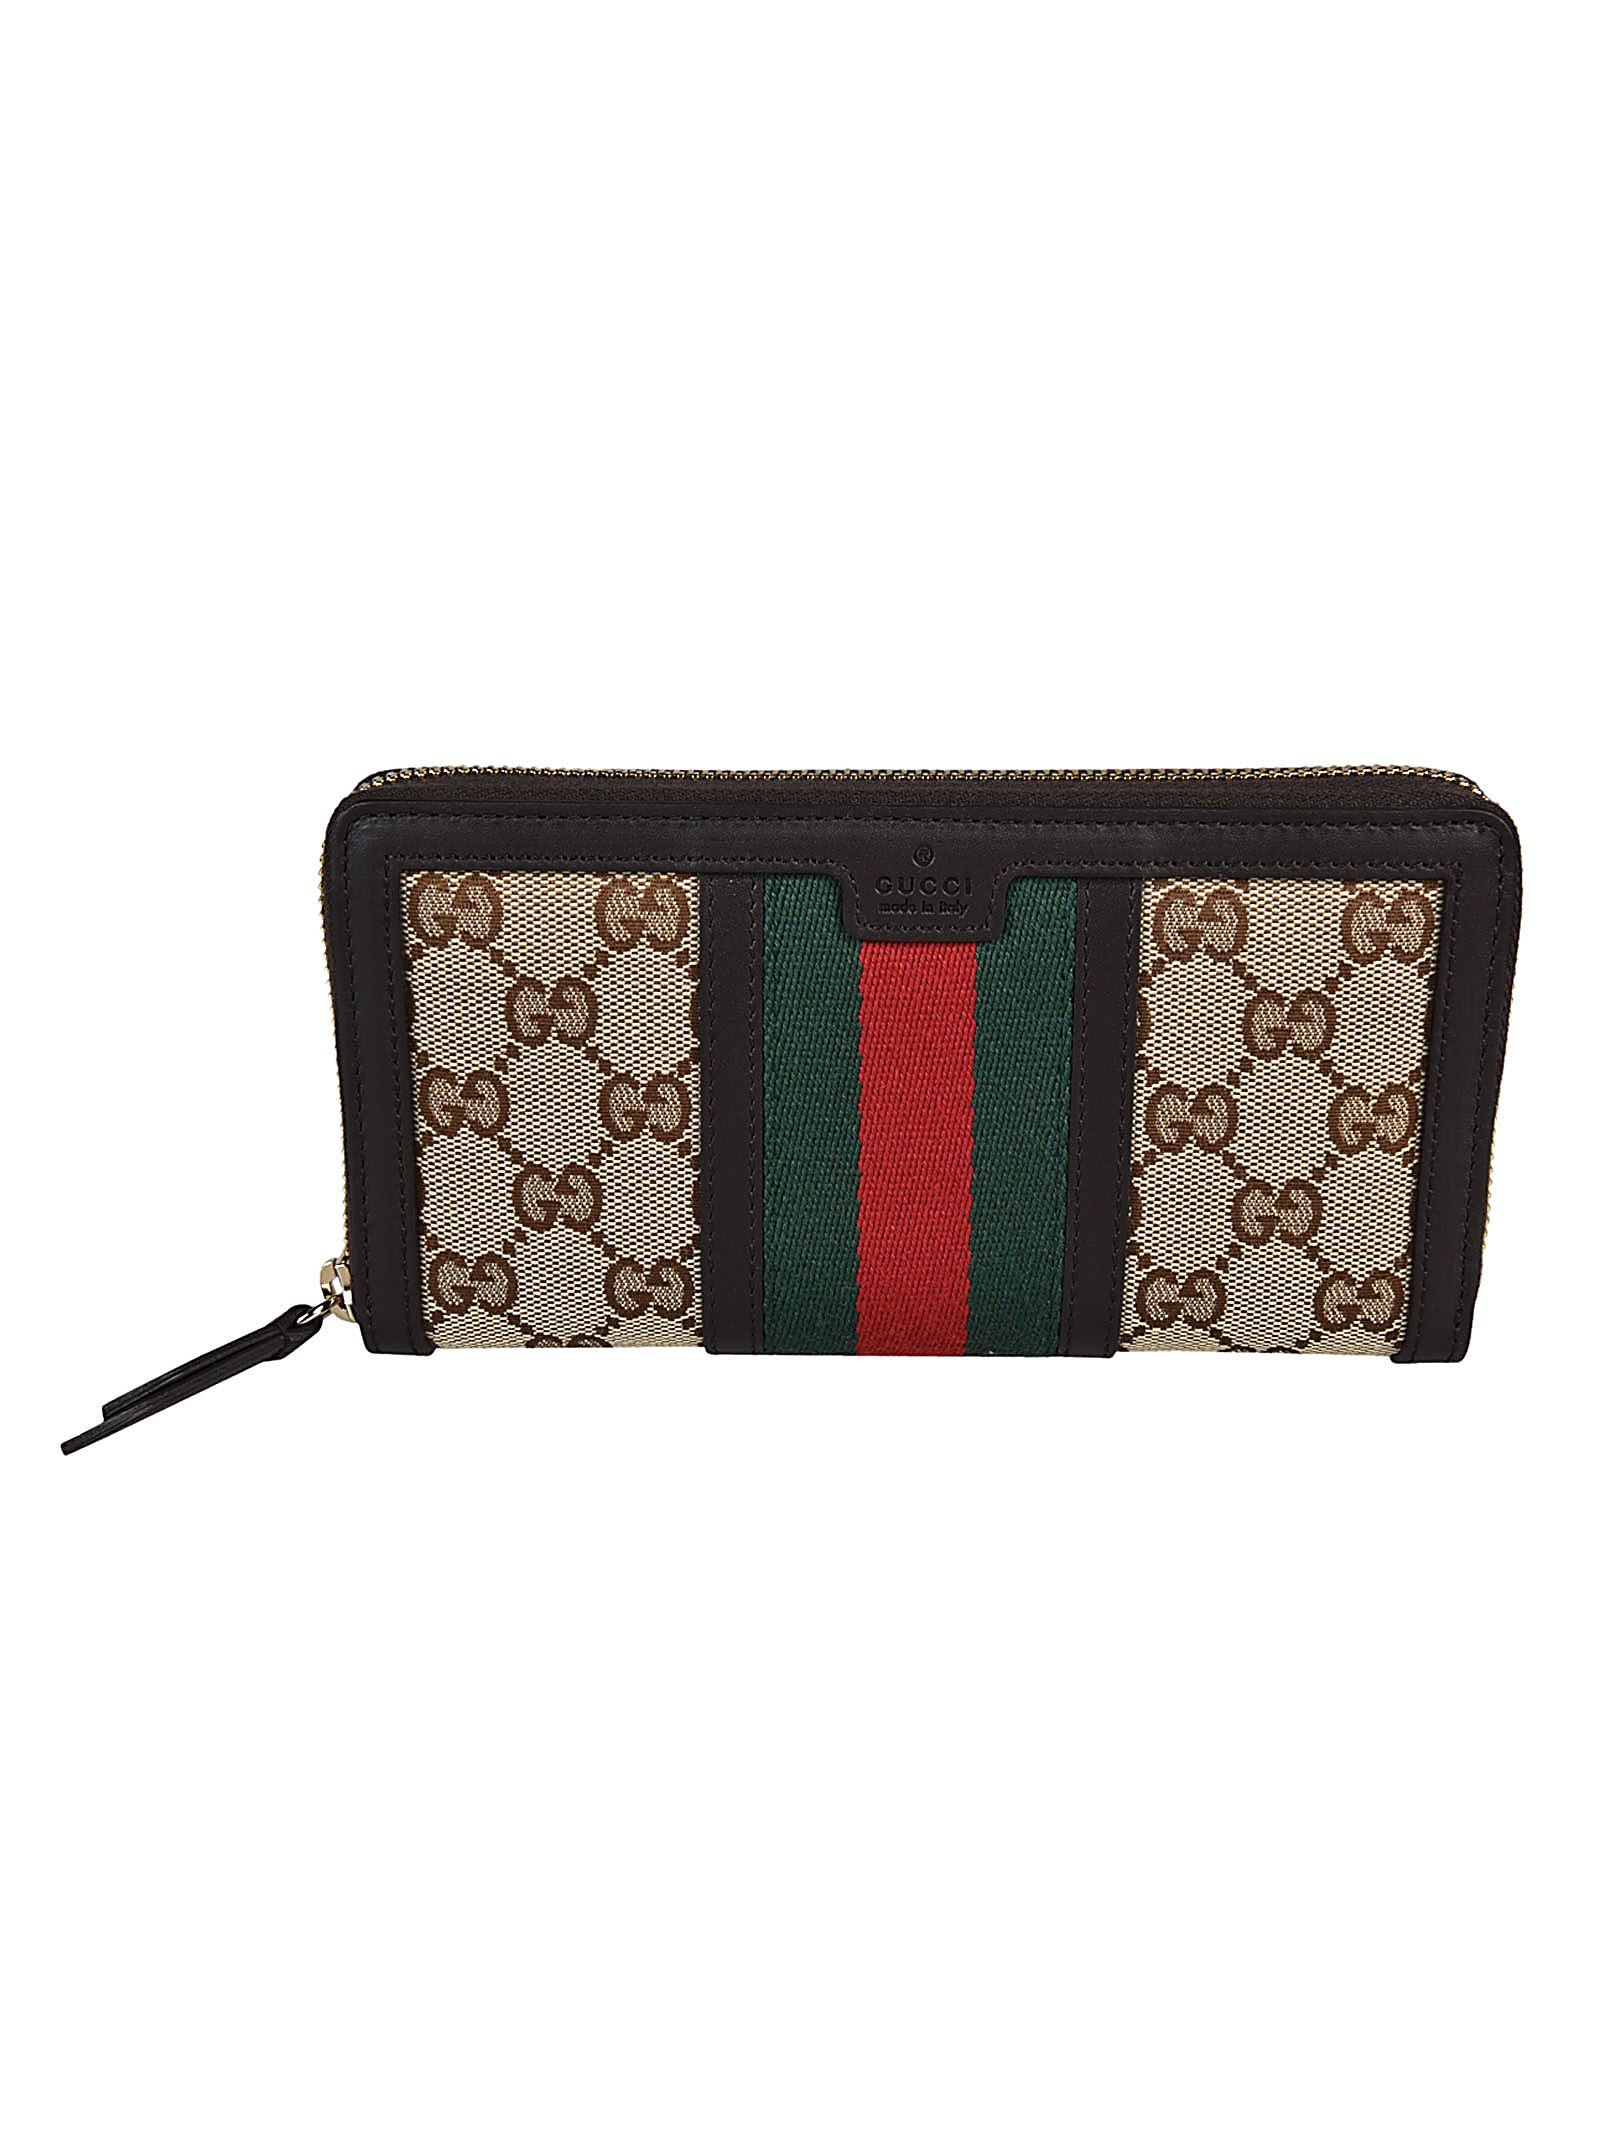 cd86a137c3042c Gucci Vintage Web GG Canvas Zip Around Wallet - Brown - 10537126 | italist